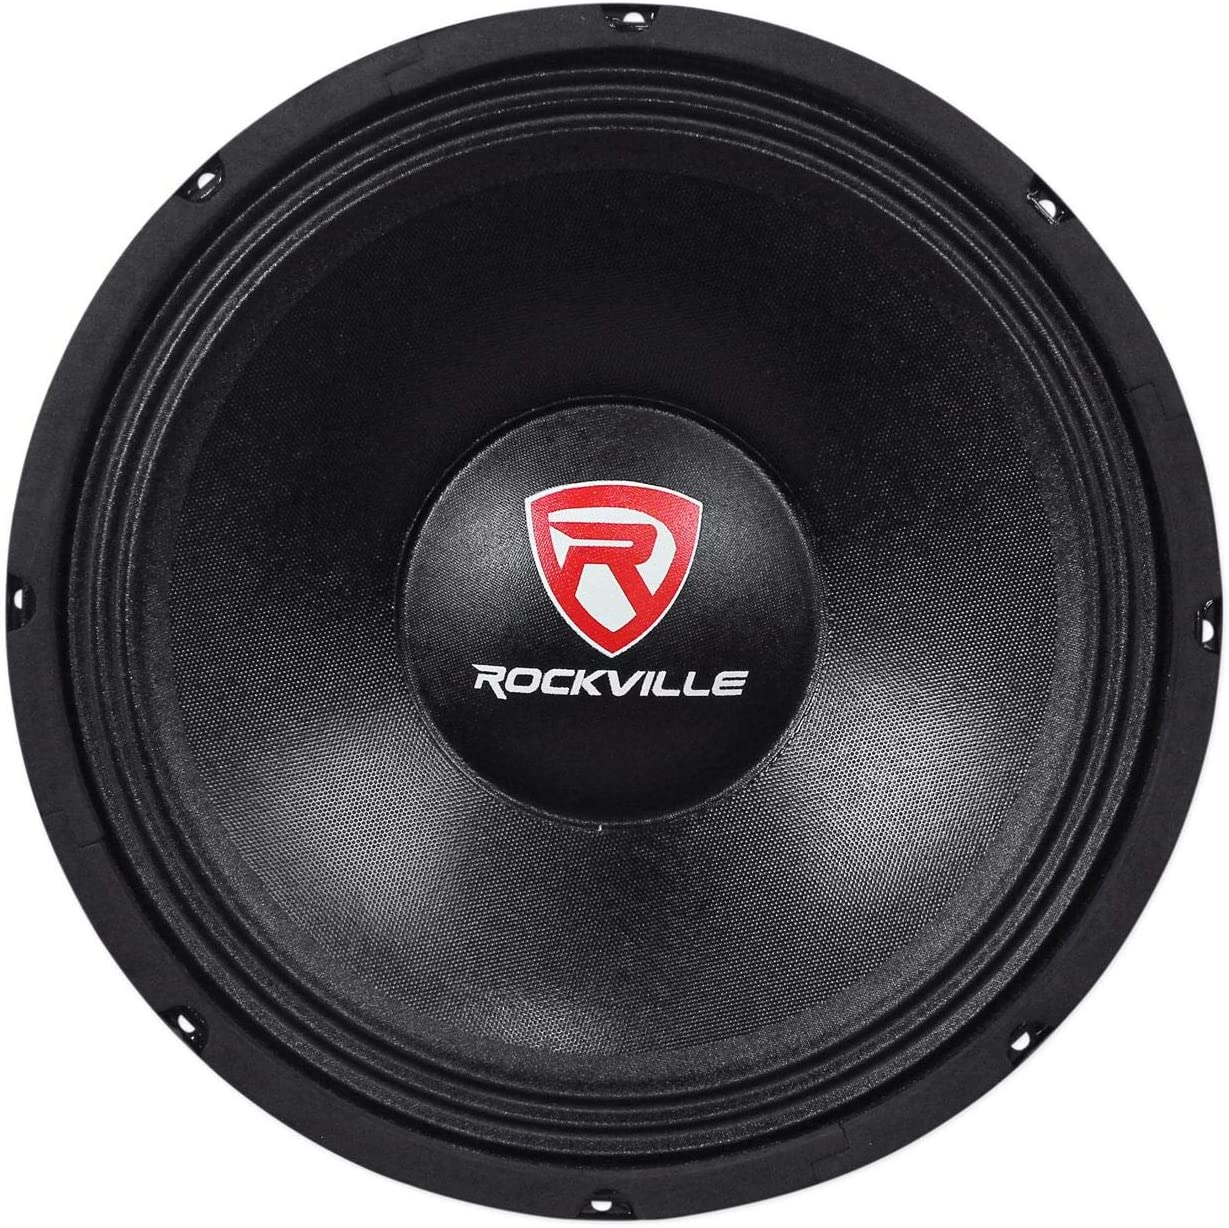 "Rockville RVP12W4 600 Watt 12"" Raw Replacement DJ PA Subwoofer 4 Ohm Sub Woofer"